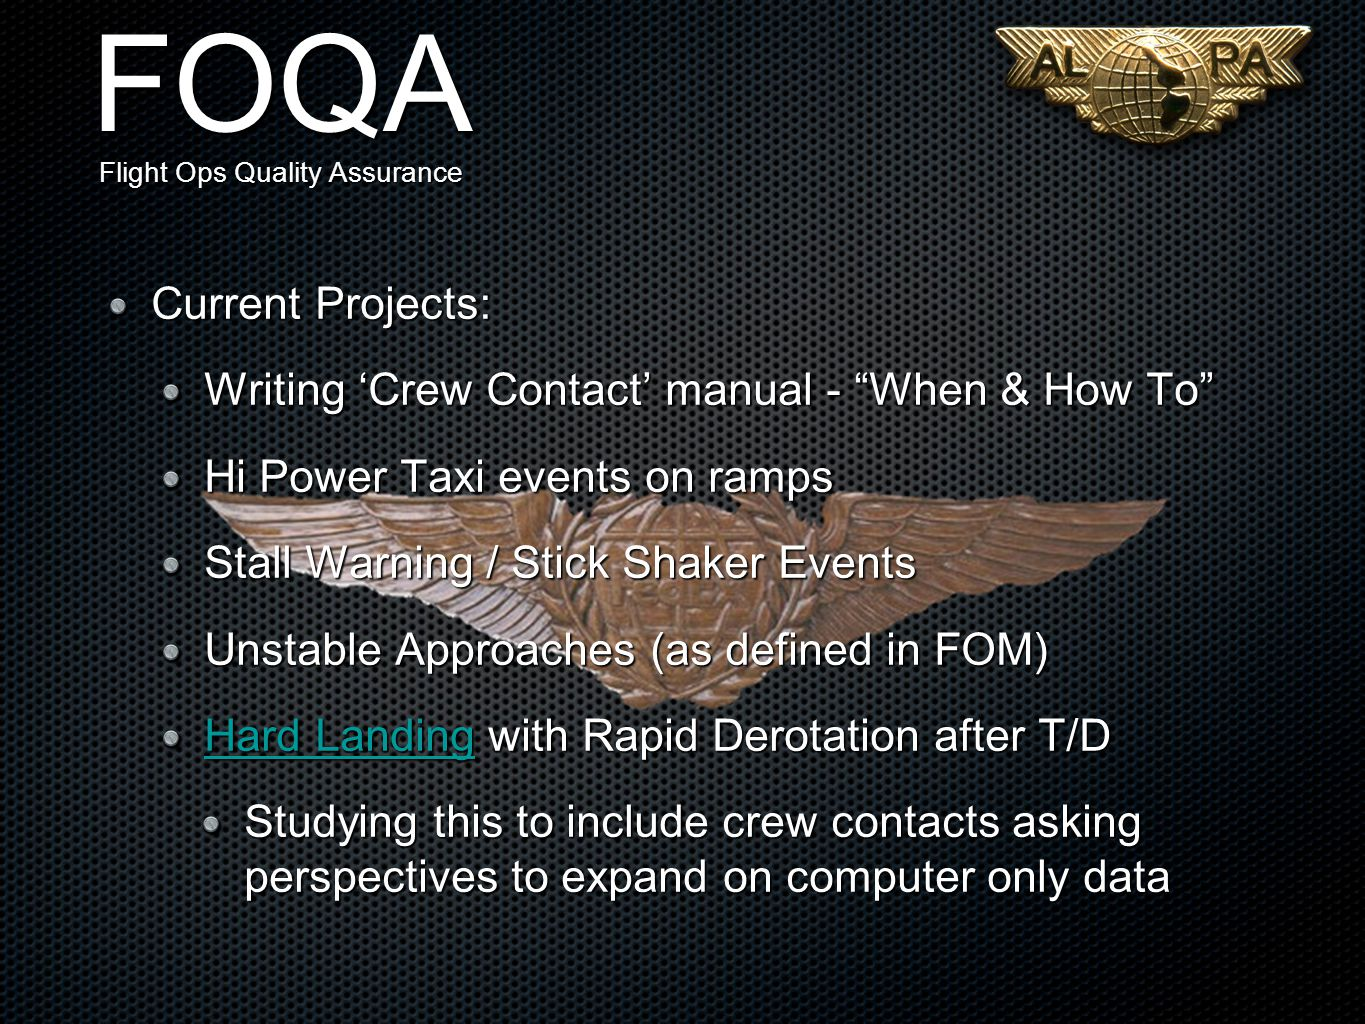 FOQA Flight Ops Quality Assurance Current Projects: Writing 'Crew Contact' manual - When & How To Hi Power Taxi events on ramps Stall Warning / Stick Shaker Events Unstable Approaches (as defined in FOM) Hard LandingHard Landing with Rapid Derotation after T/D Hard Landing Studying this to include crew contacts asking perspectives to expand on computer only data